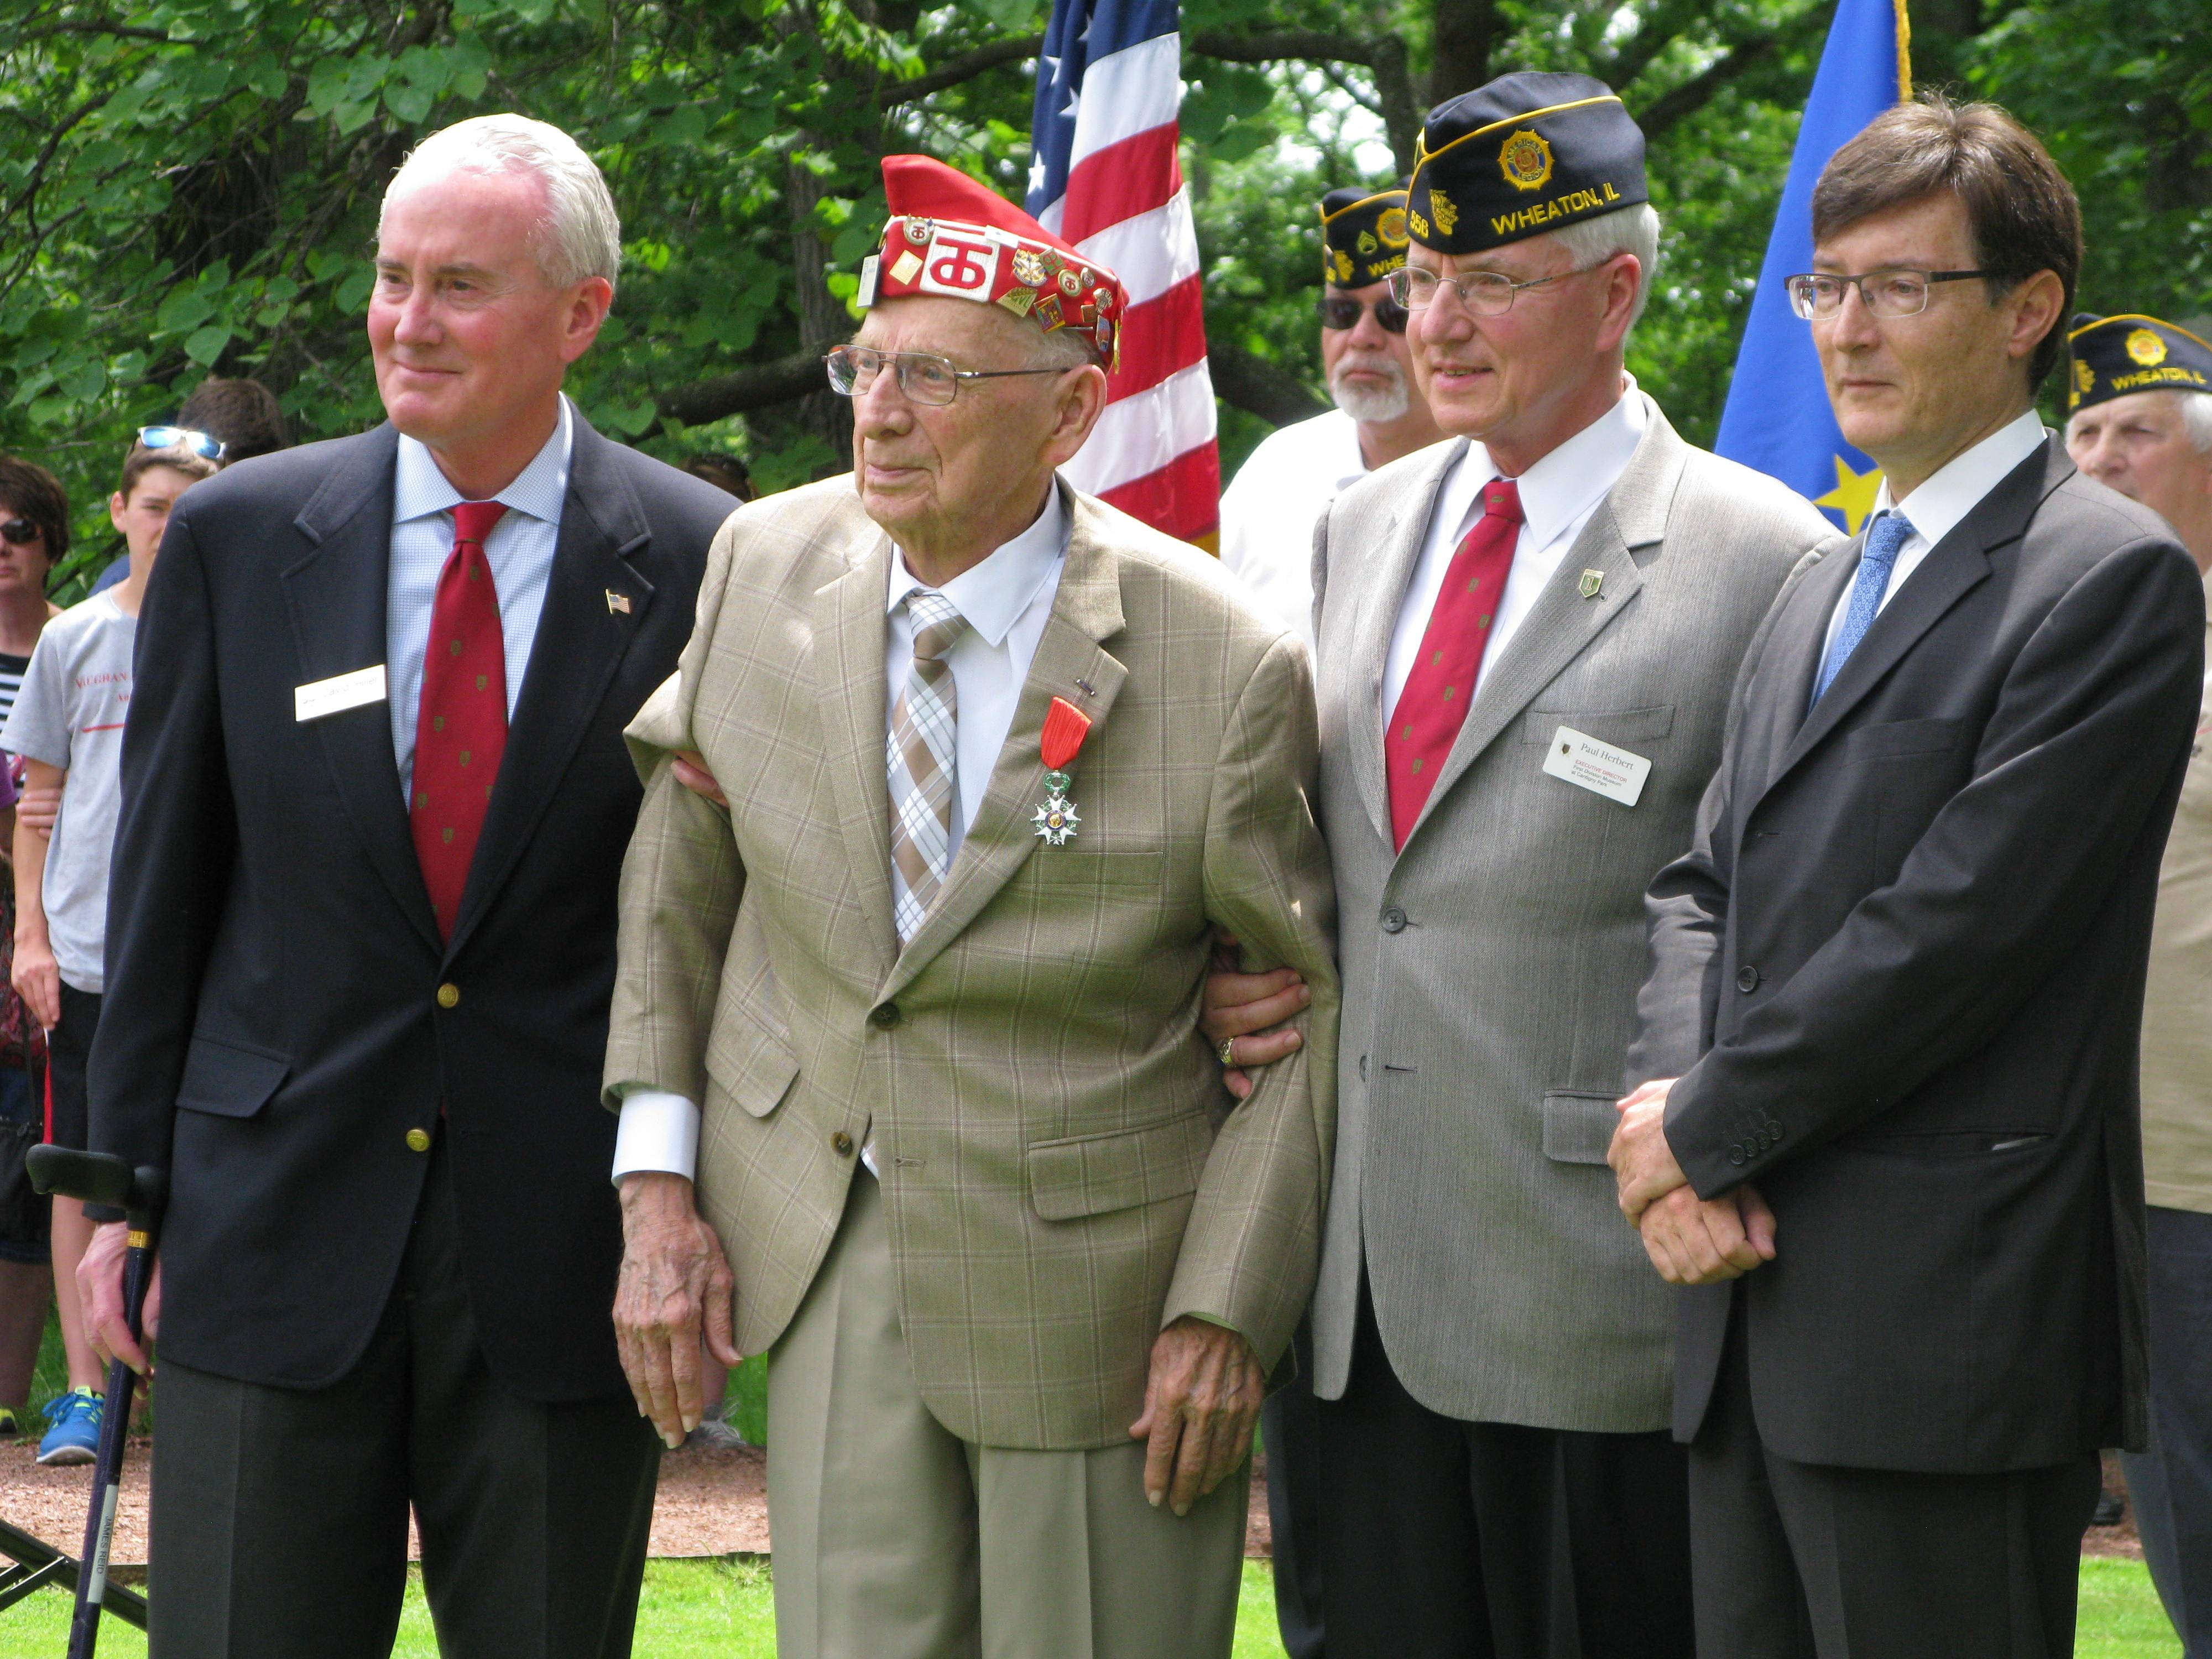 From left, David Hiller, CEO of the Robert R. McCormick Foundation and Cantigny Park, James Reid of Oak Brook, recipient of the French Legion of Honor medal, Paul Herbert, director of the First Division Museum at Cantigny, and Graham Paul, consul general of France to Chicago, during the 70th anniversary commemoration of D-Day at Cantigny Park in Wheaton.